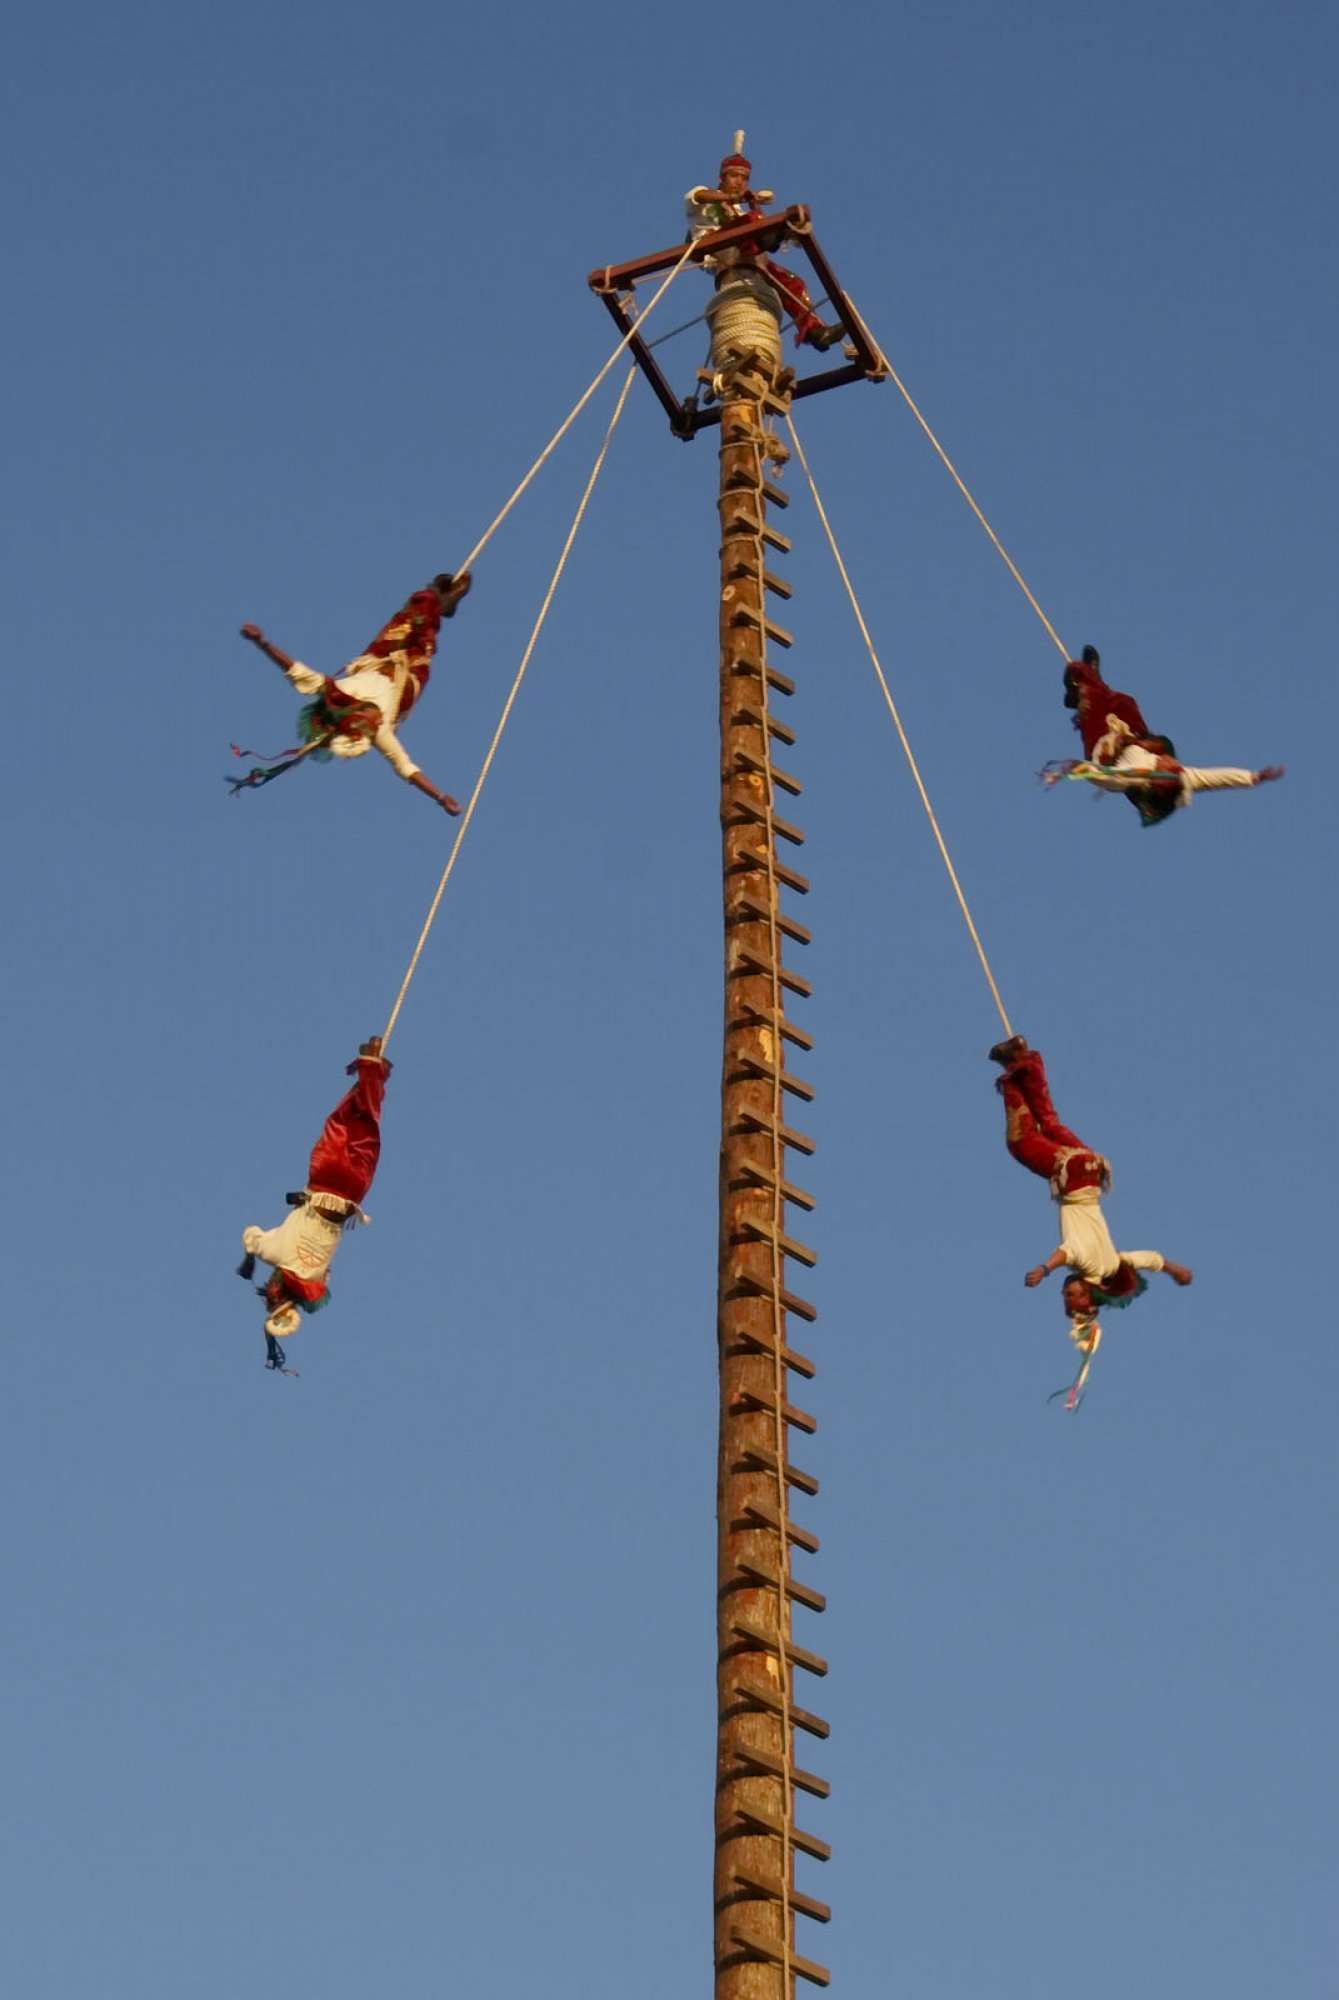 https://bubo.sk/uploads/galleries/7336/voladores-2.jpg